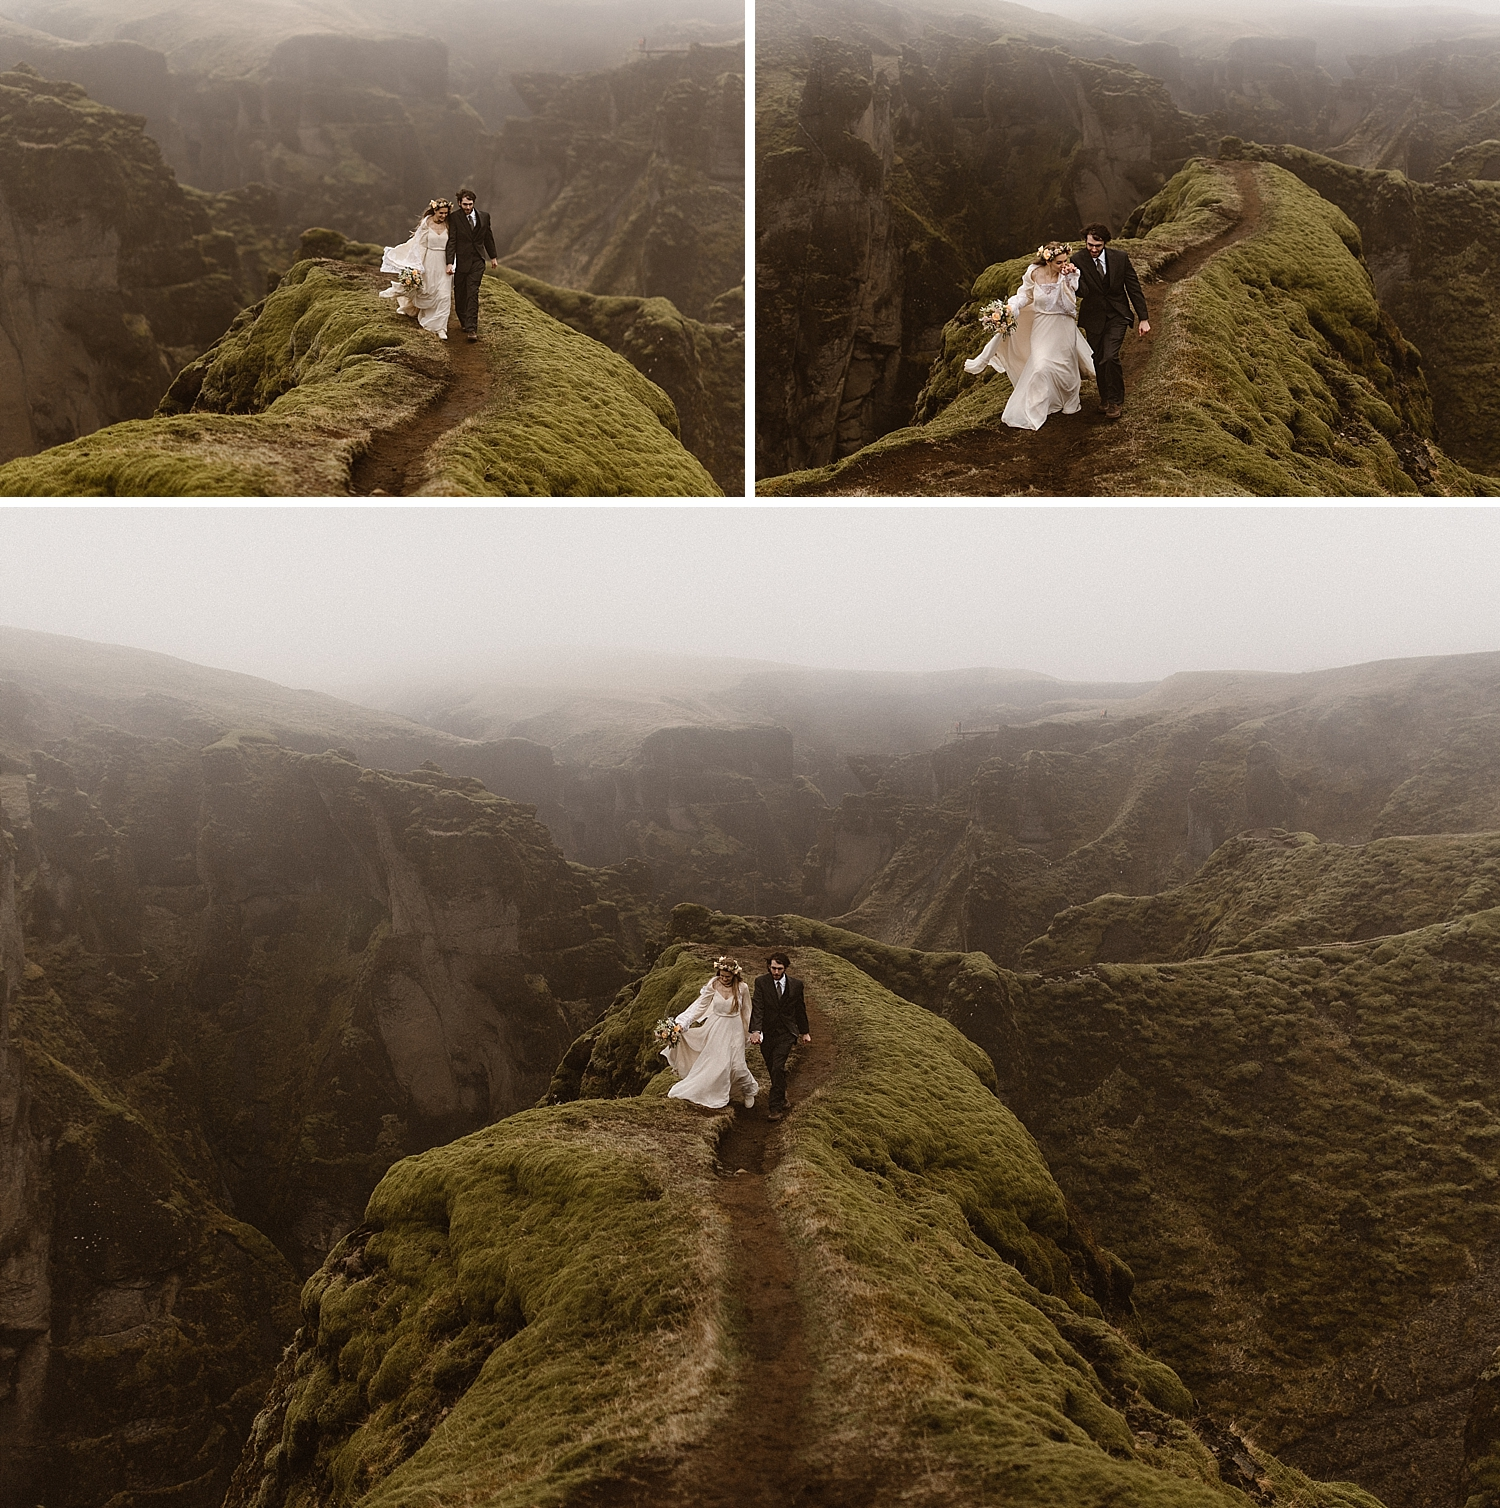 Looking like a vision out of a Stevie Nicks dream, Julie led Tim back up the narrow pathway above Fjadrargljufur Canyon on their way to their perfect intimate wedding location. Photos captured by elopement photographer Maddie Mae.